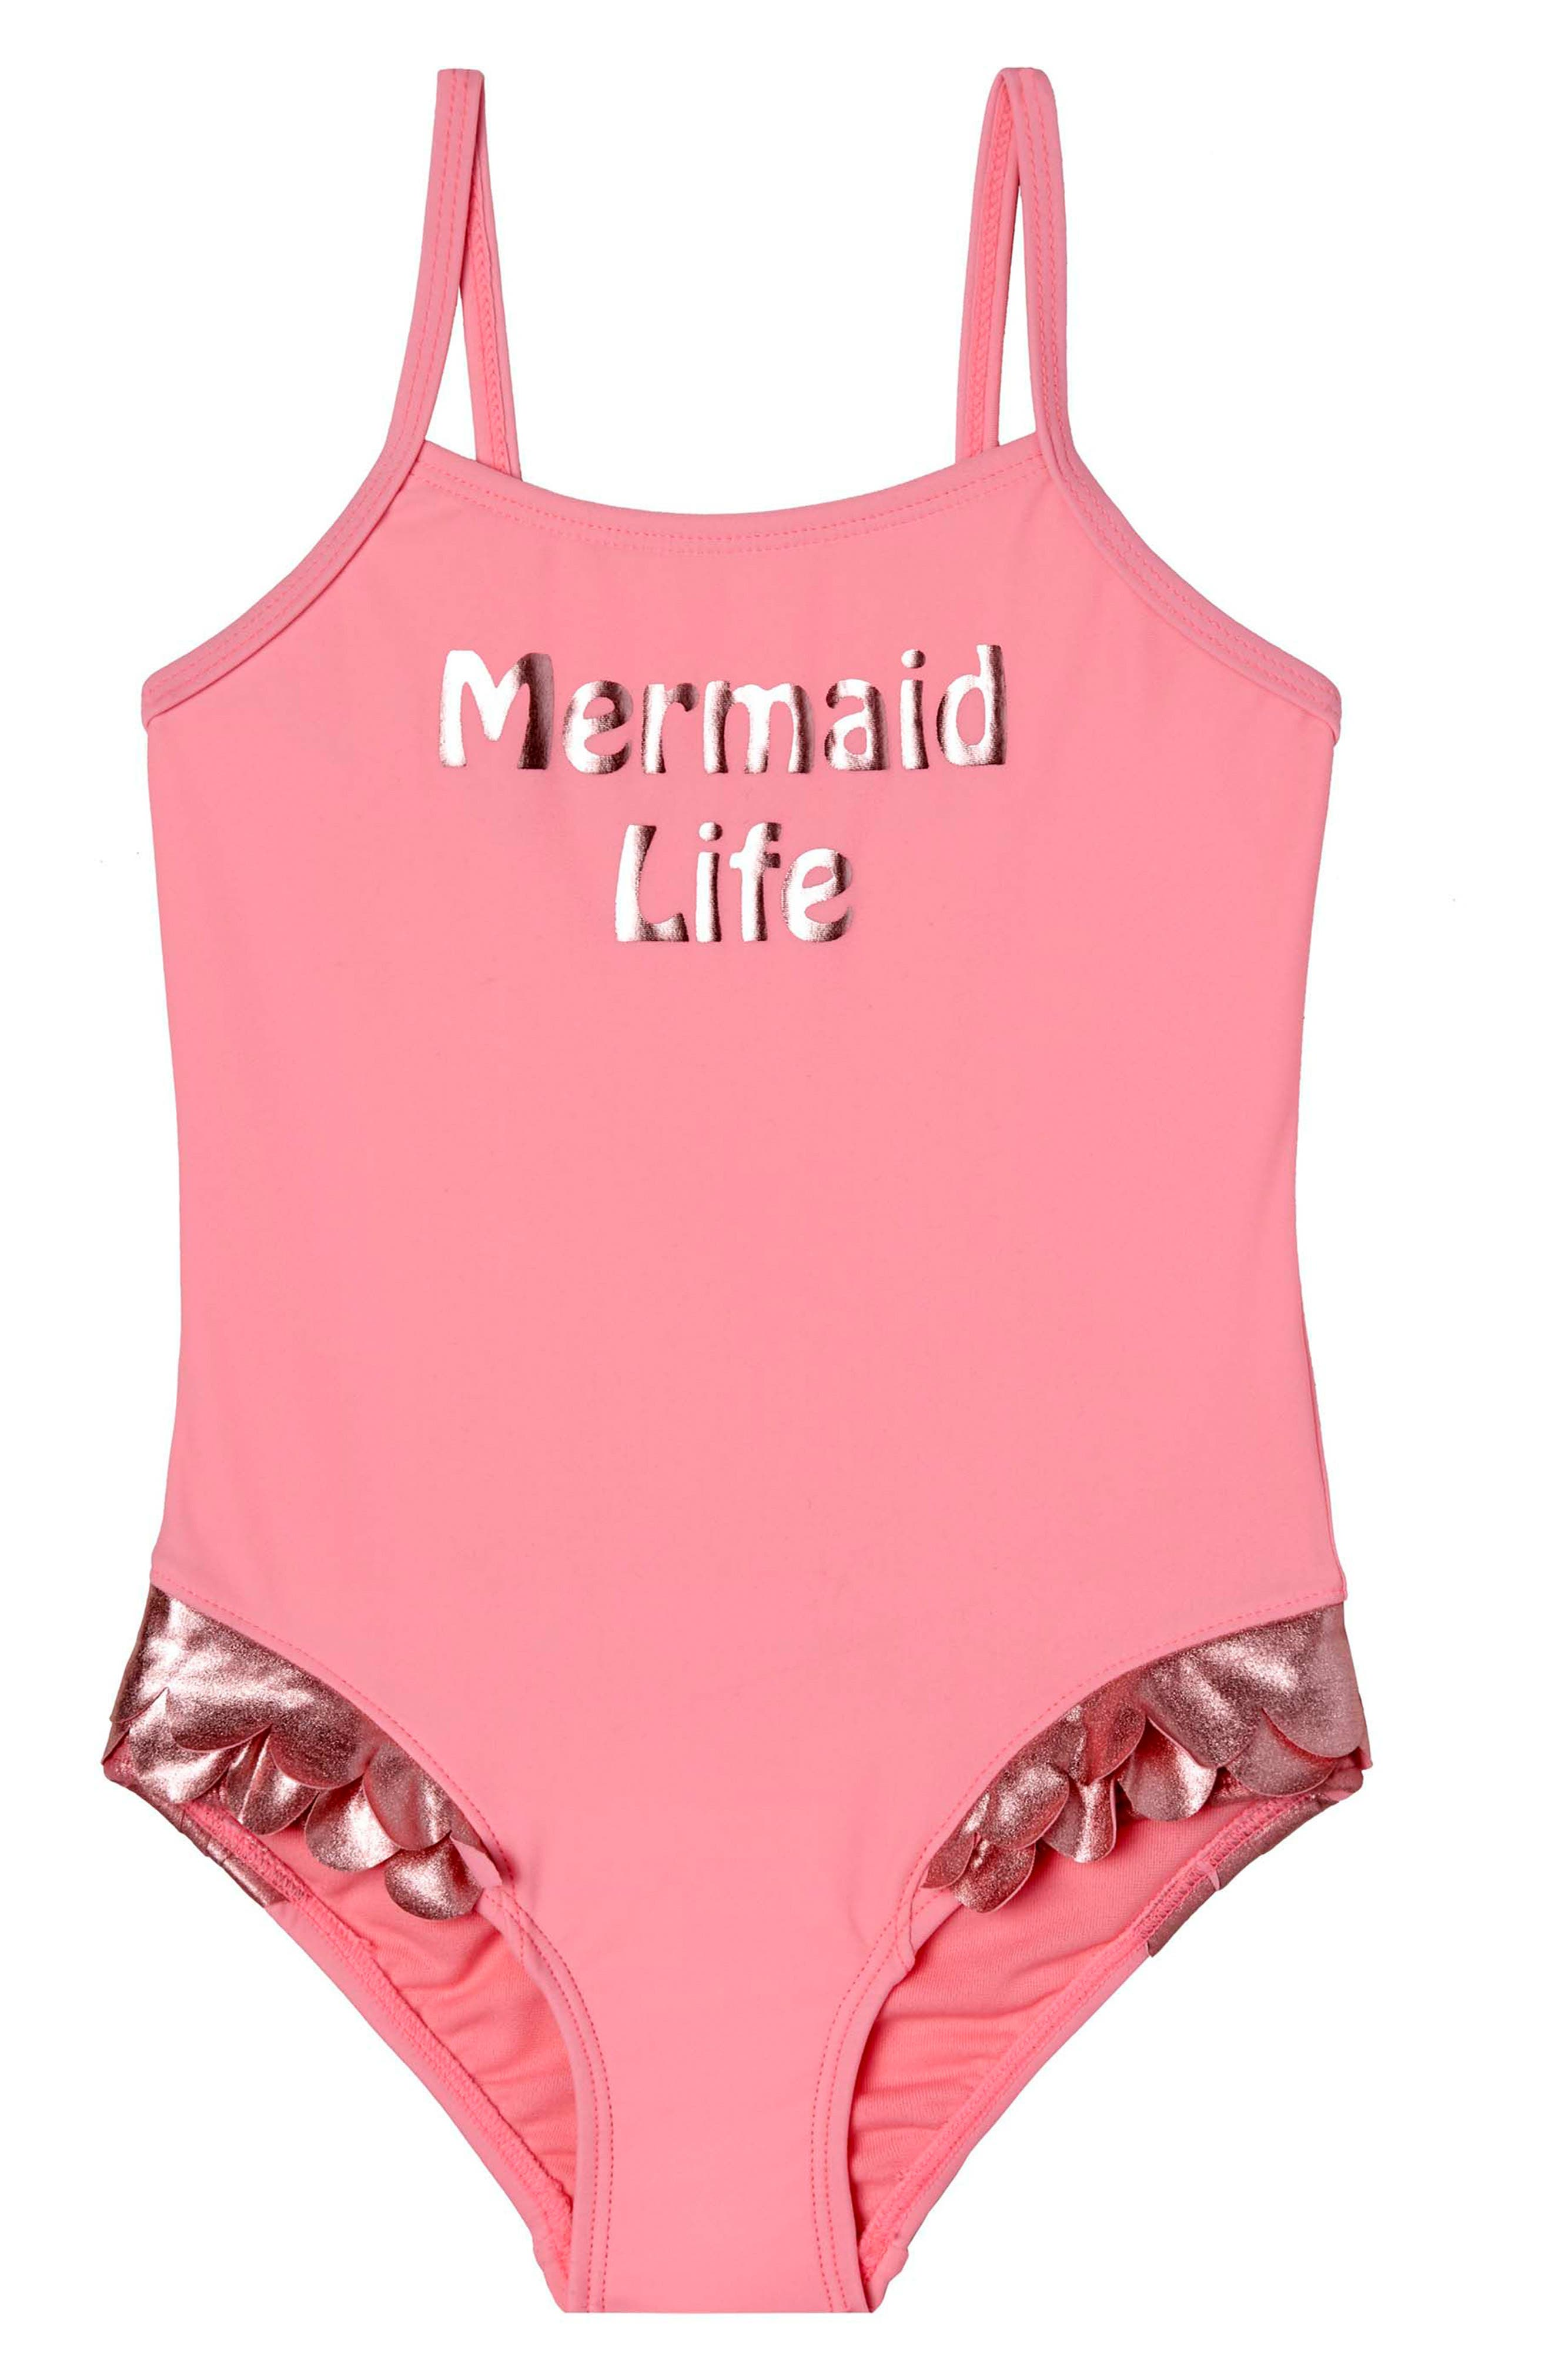 Mermaid Life One-Piece Swimsuit,                         Main,                         color, Pink